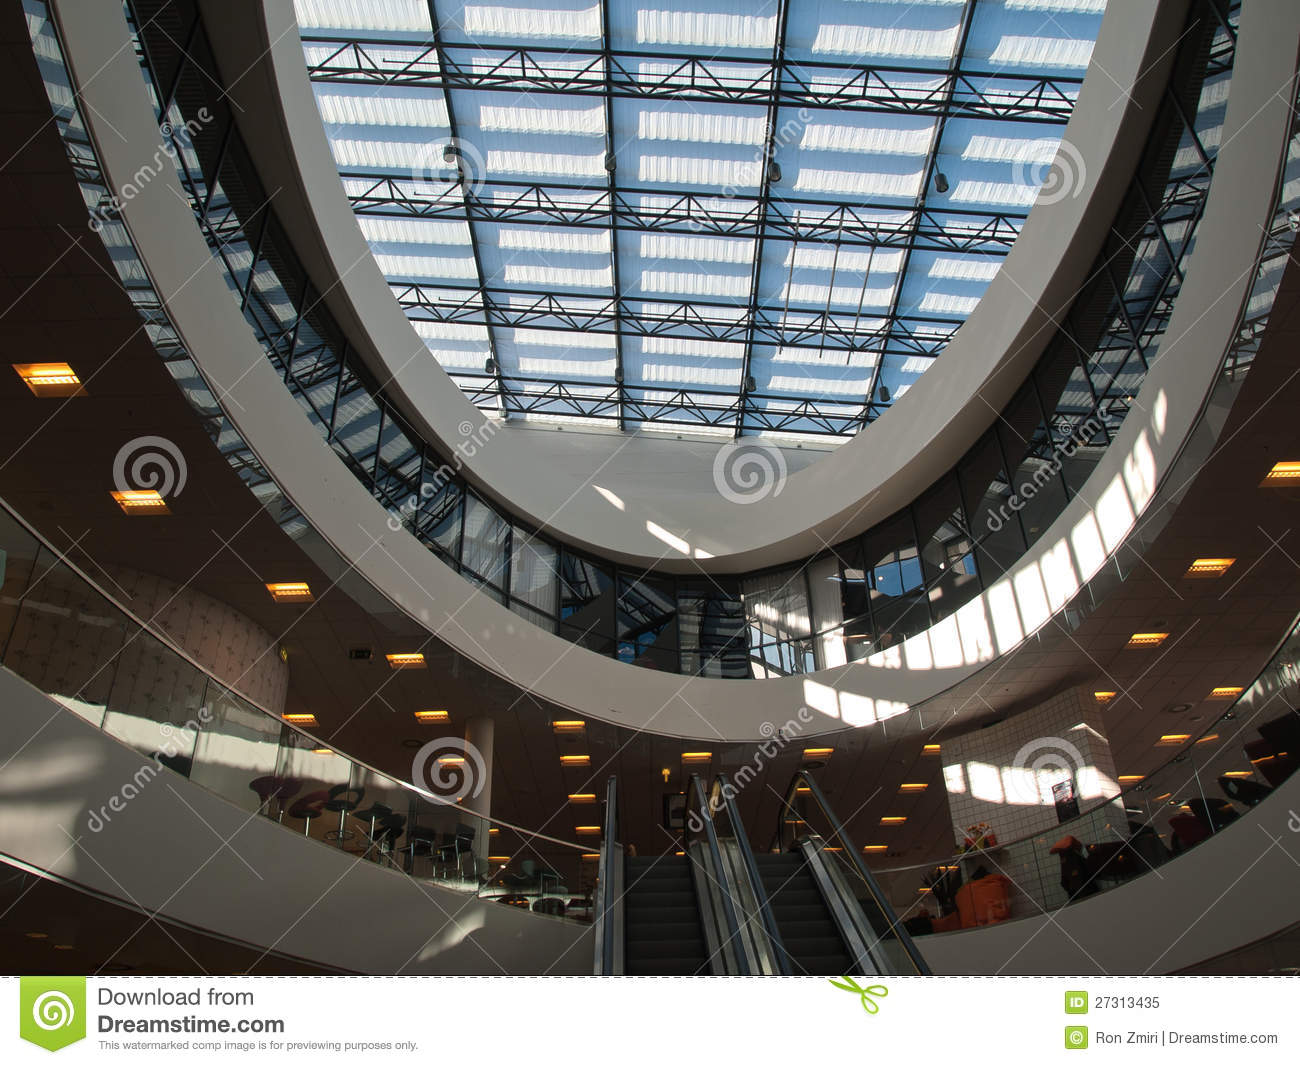 ... Abstract Glass Roof Ceiling Royalty Free Stock Photo - Image: 27313435